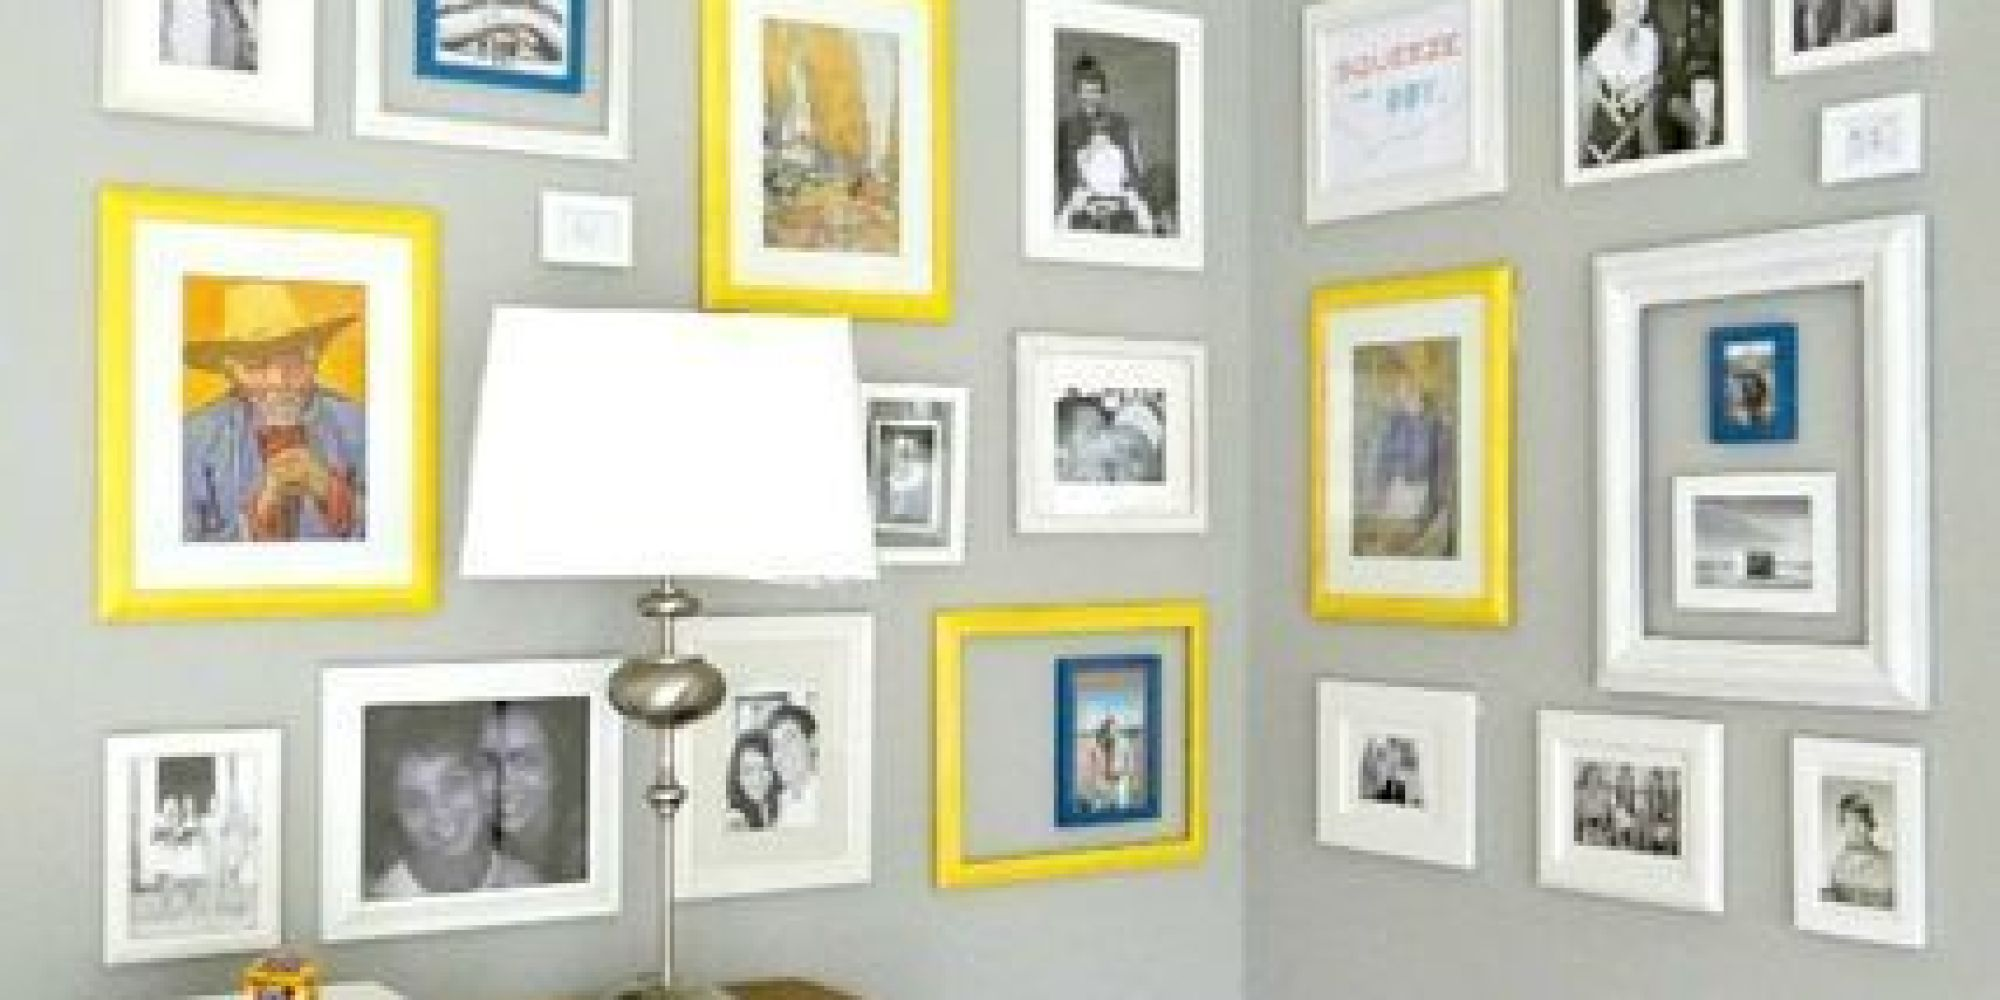 35 Killer Ways to Use Your Empty Vertical Space | HuffPost